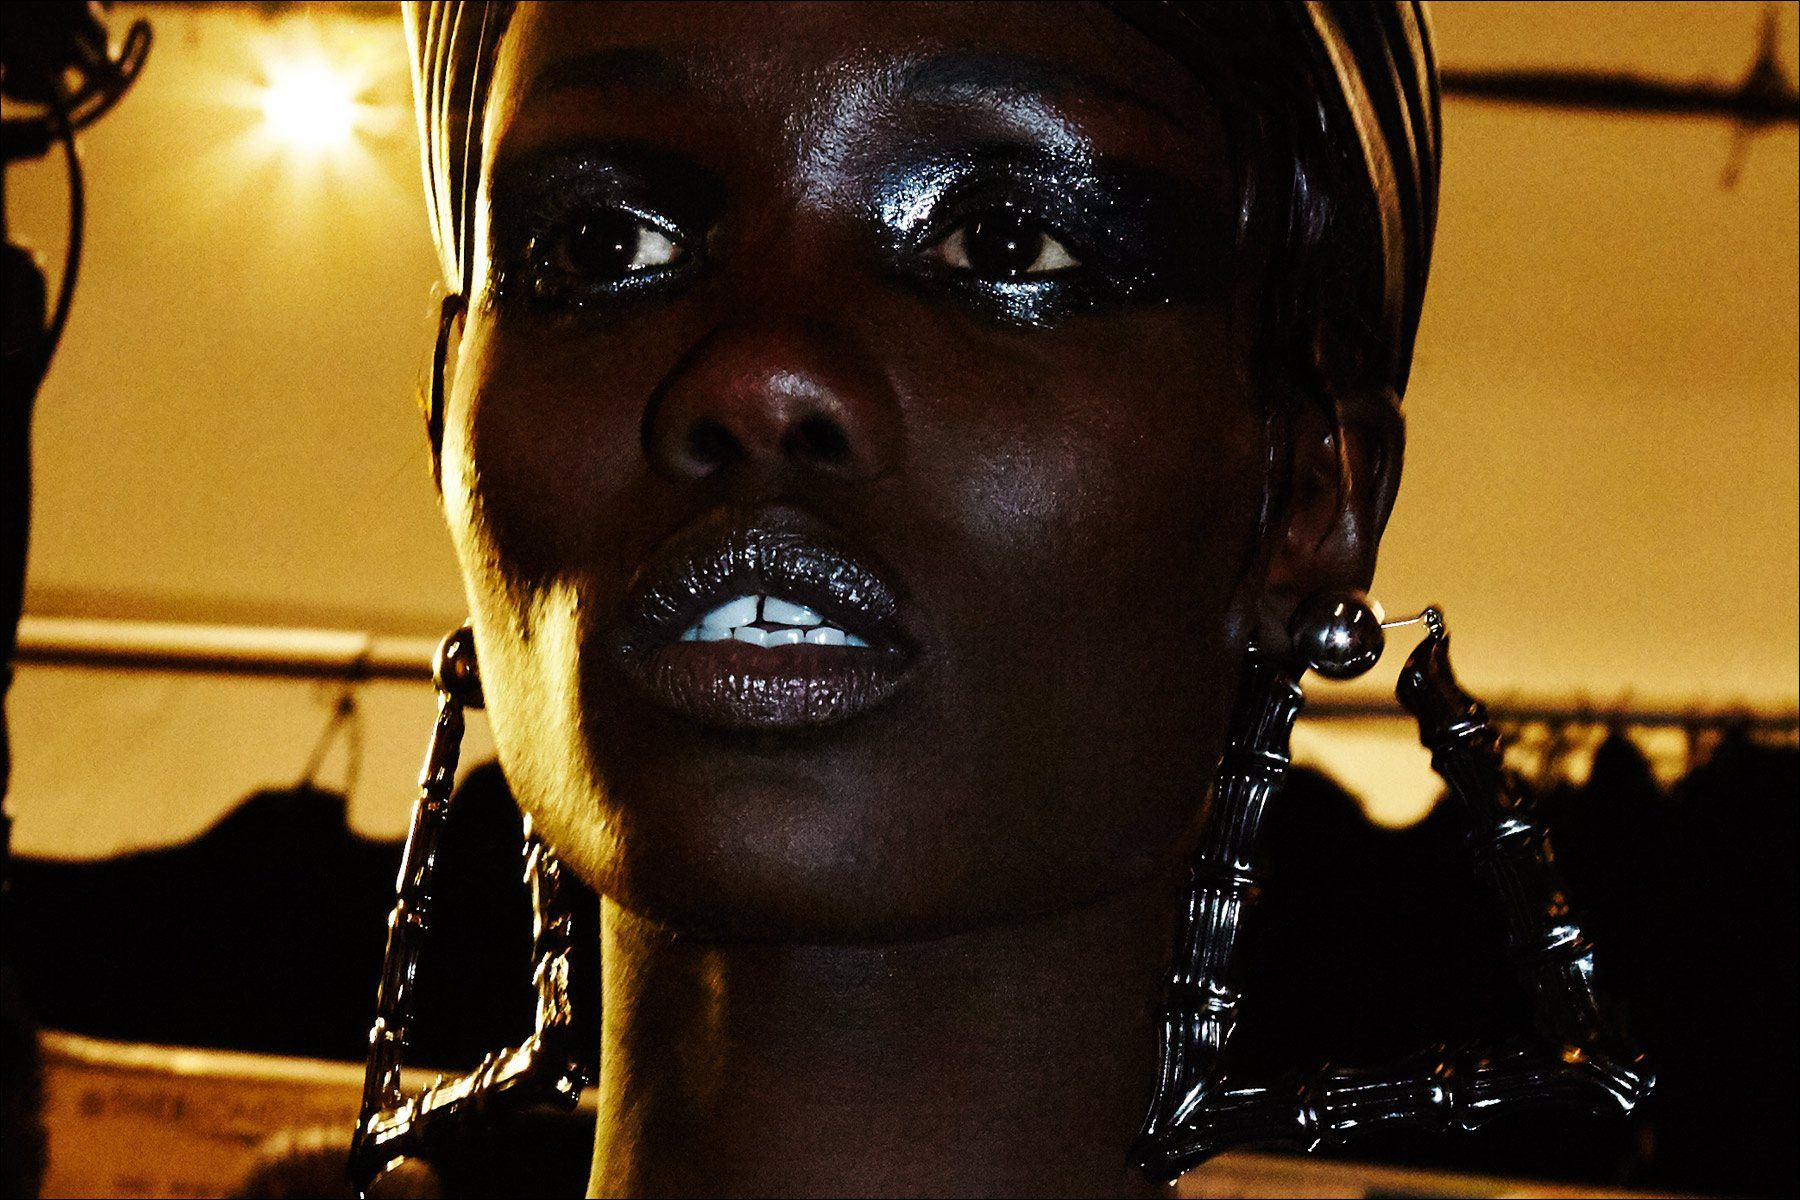 Model Tina J. photographed backstage at The Blonds Fall 2017 collection. Photography by Alexander Thompson for Ponyboy magazine New York.